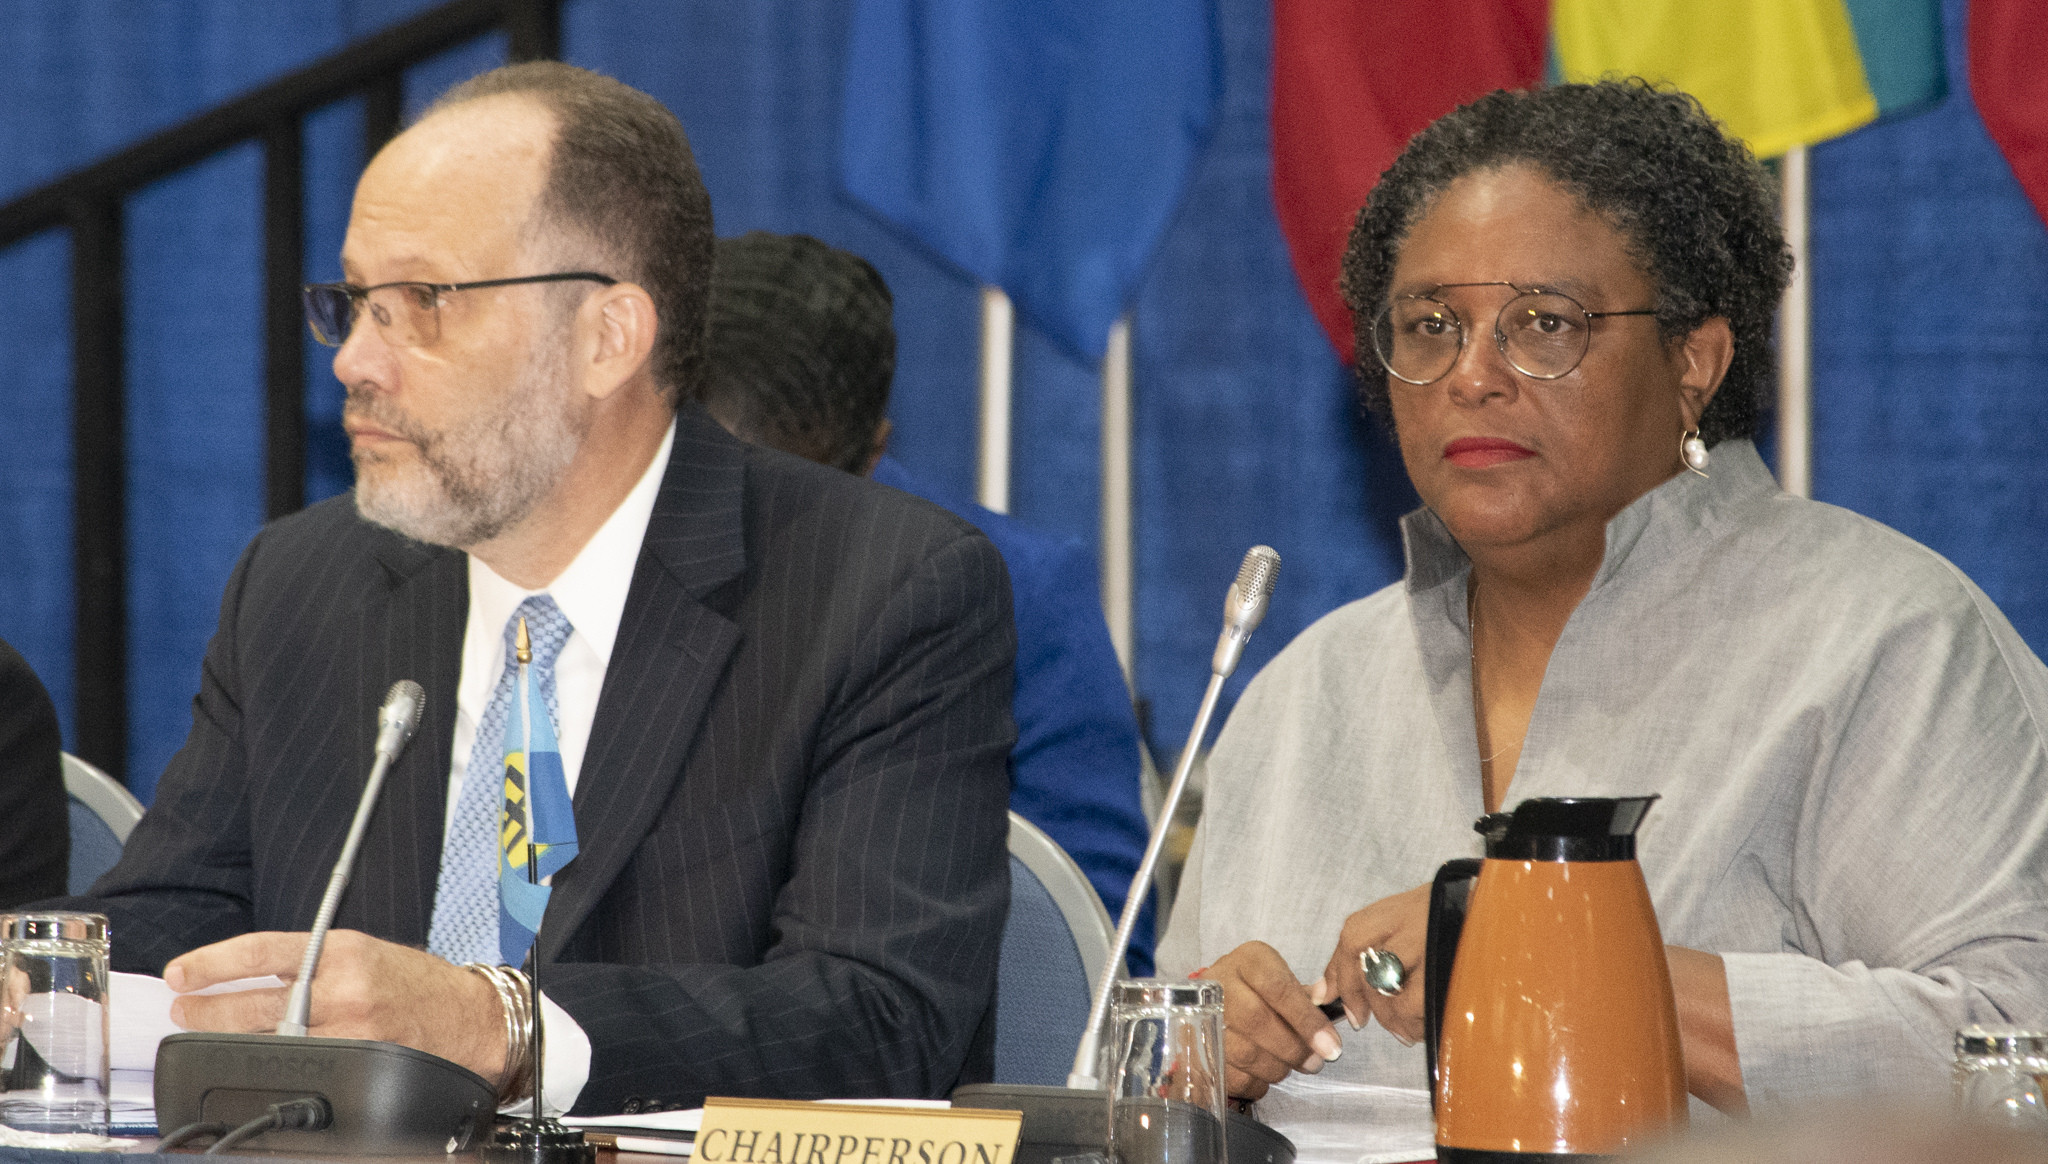 Chair of the Prime Ministerial Sub-Committee on CSME, Prime Minister Mia Mottley of Barbados and CARICOM Secretary-General Ambassador Irwin LaRocque